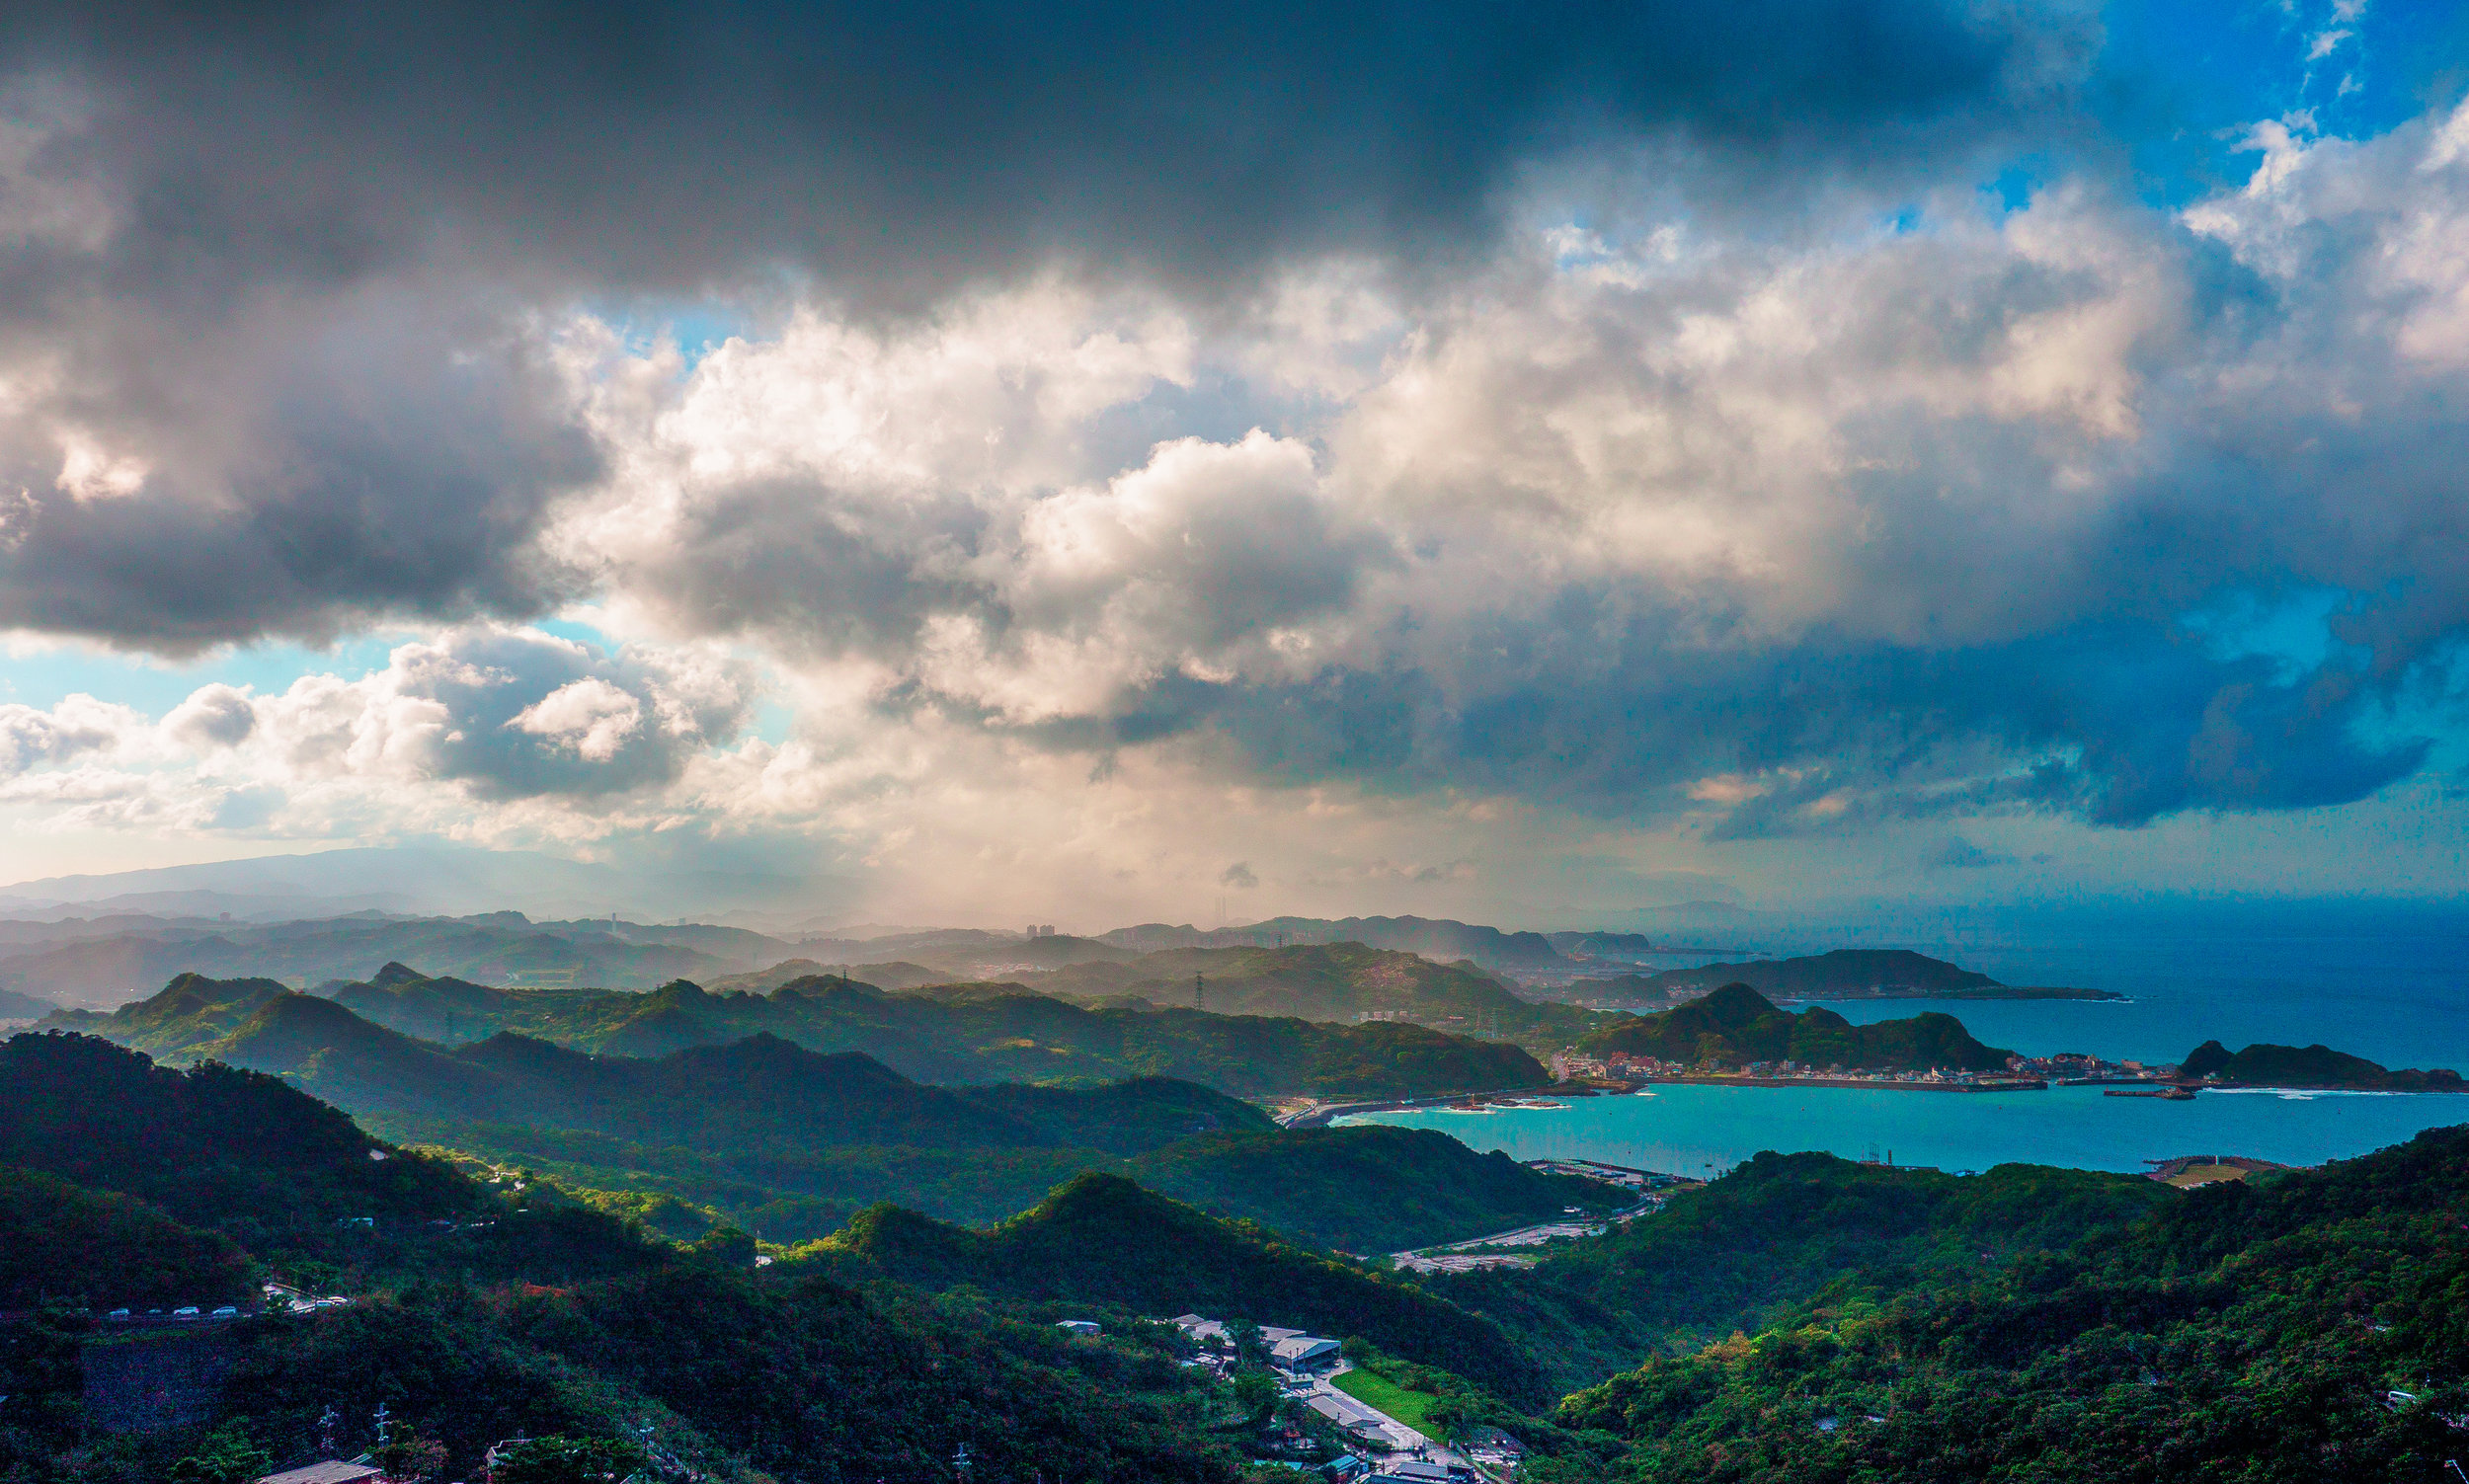 the north coast stretching all the way towards Keelung City. f16, ISO 200, 1/800, 28mm